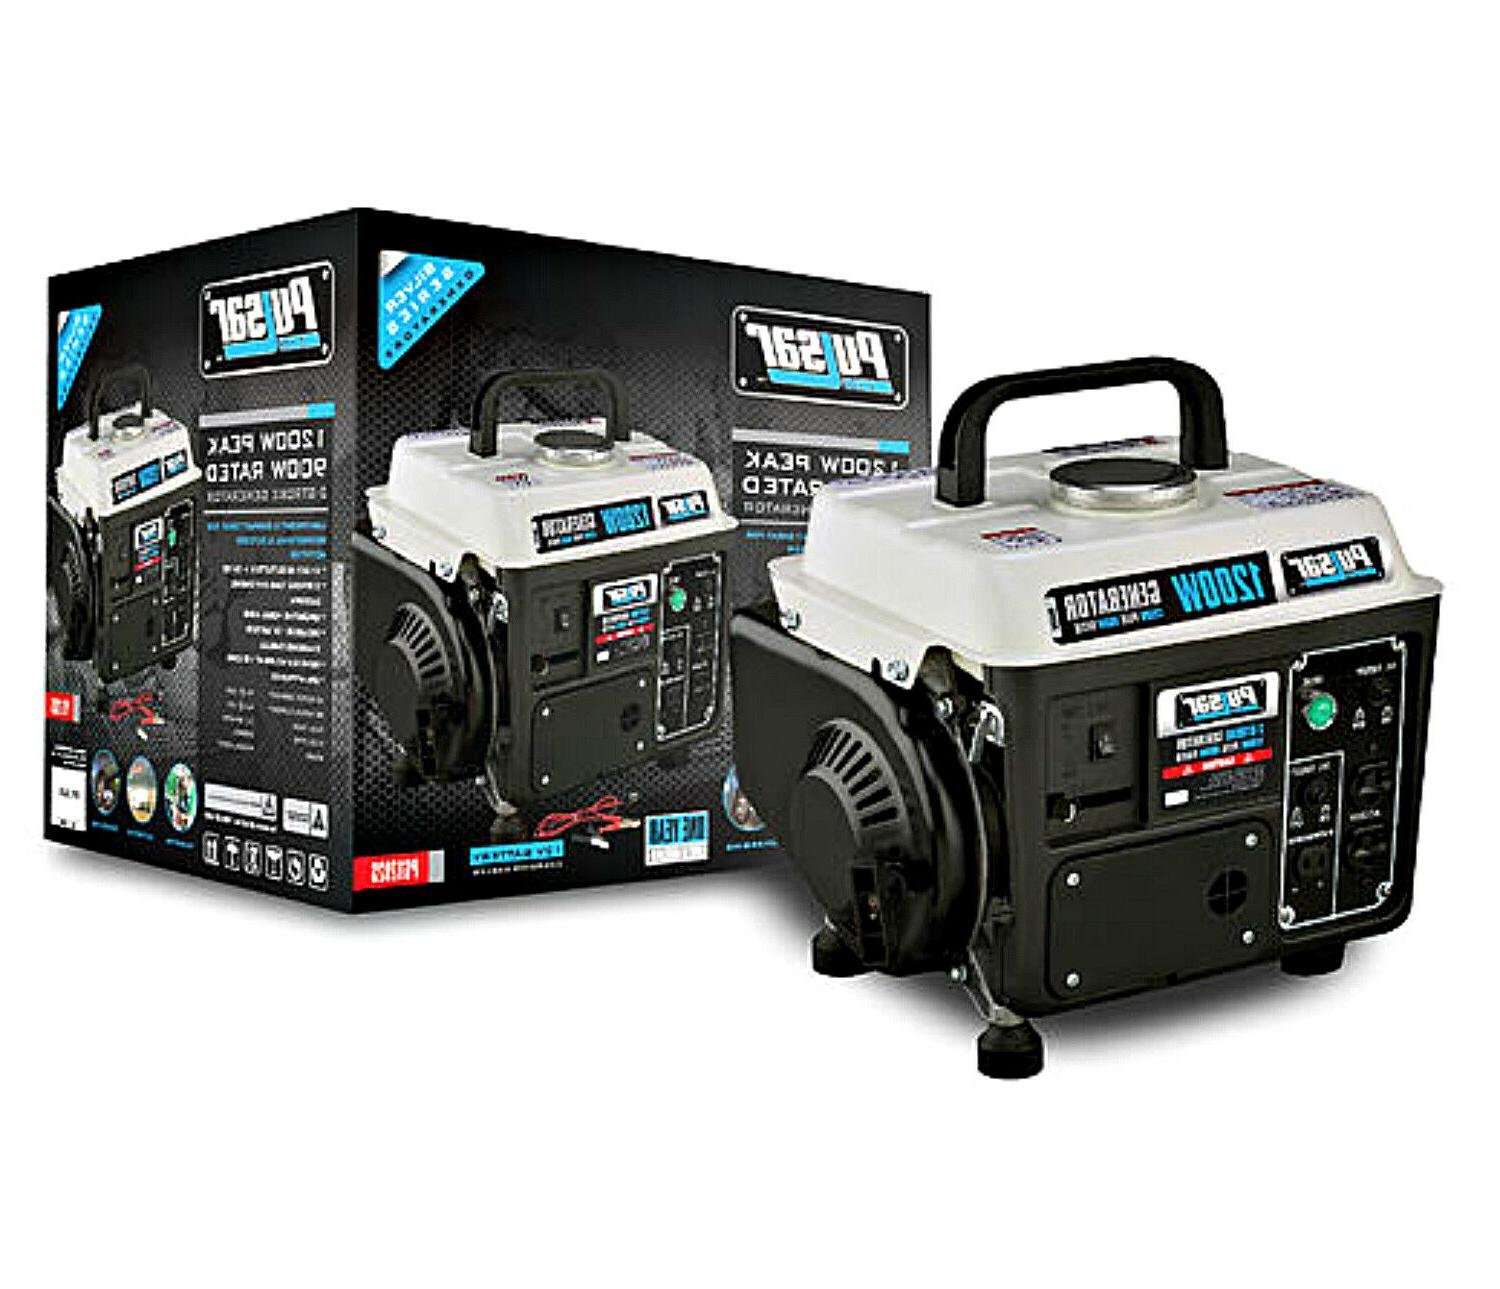 Pulsar Gas 2 Peak 1200W Rated Generator